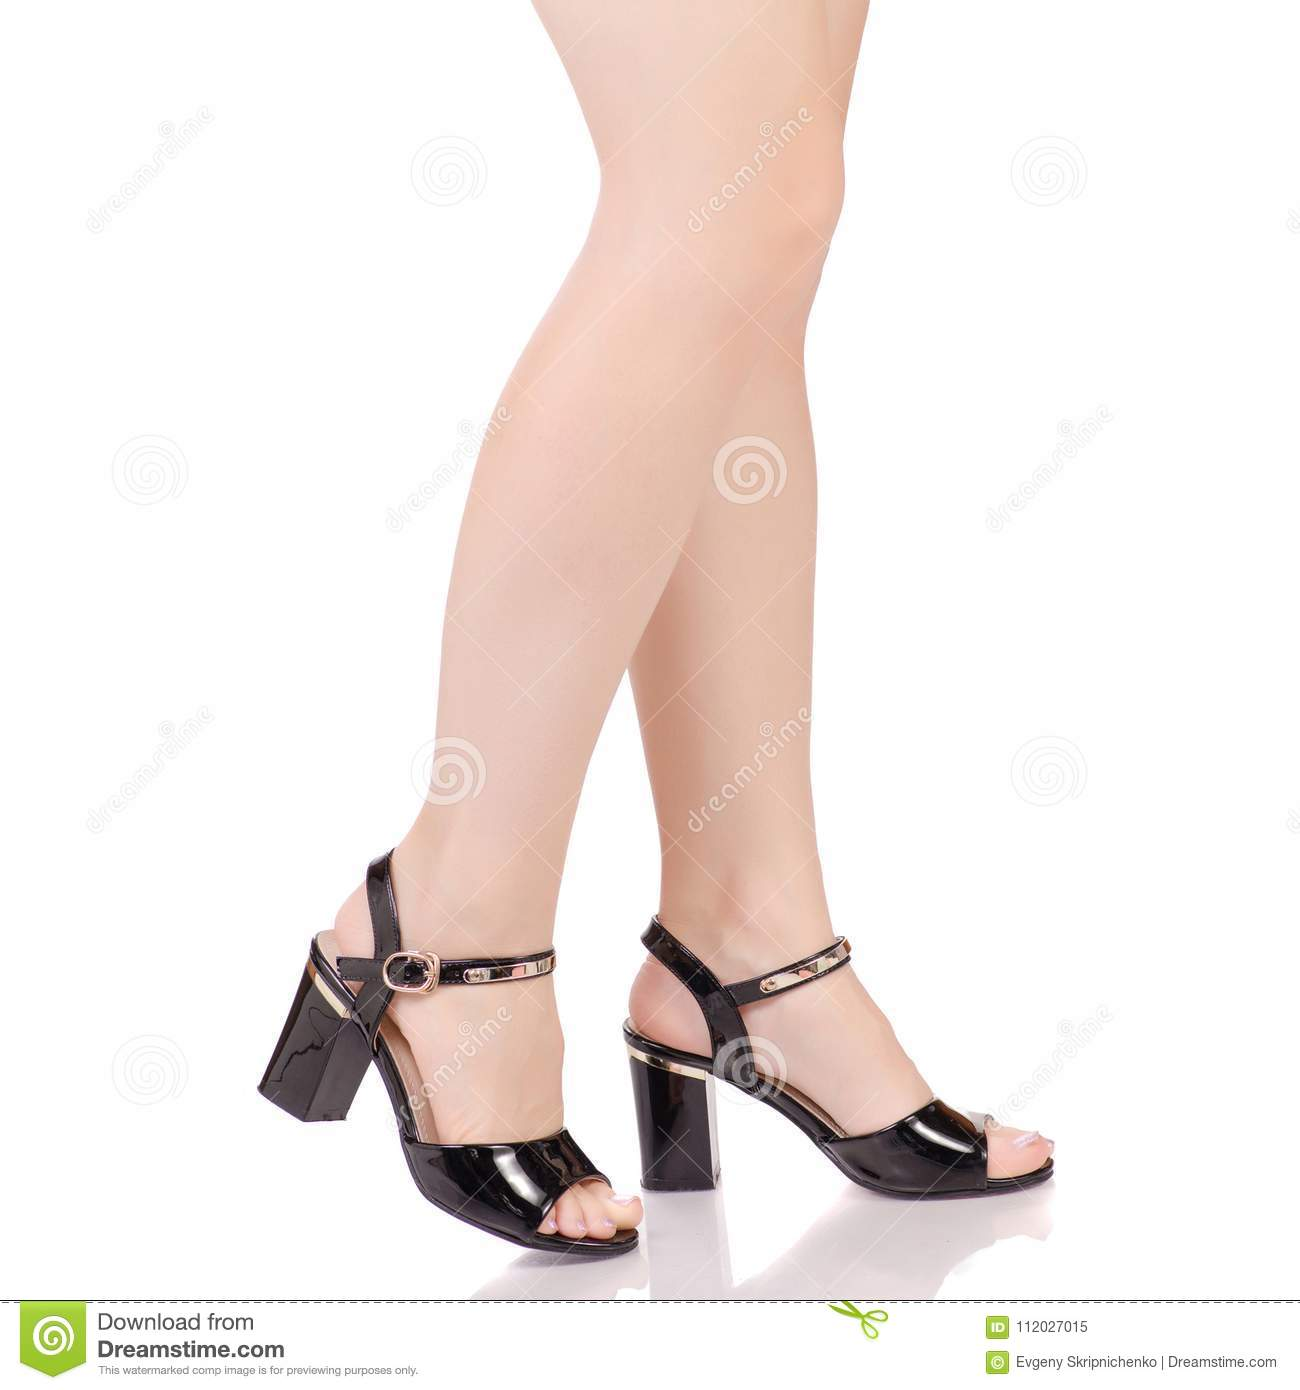 f8f2cb2a7 Female legs in black lacquered shoes sandals beauty fashion buy shop on white  background isolation